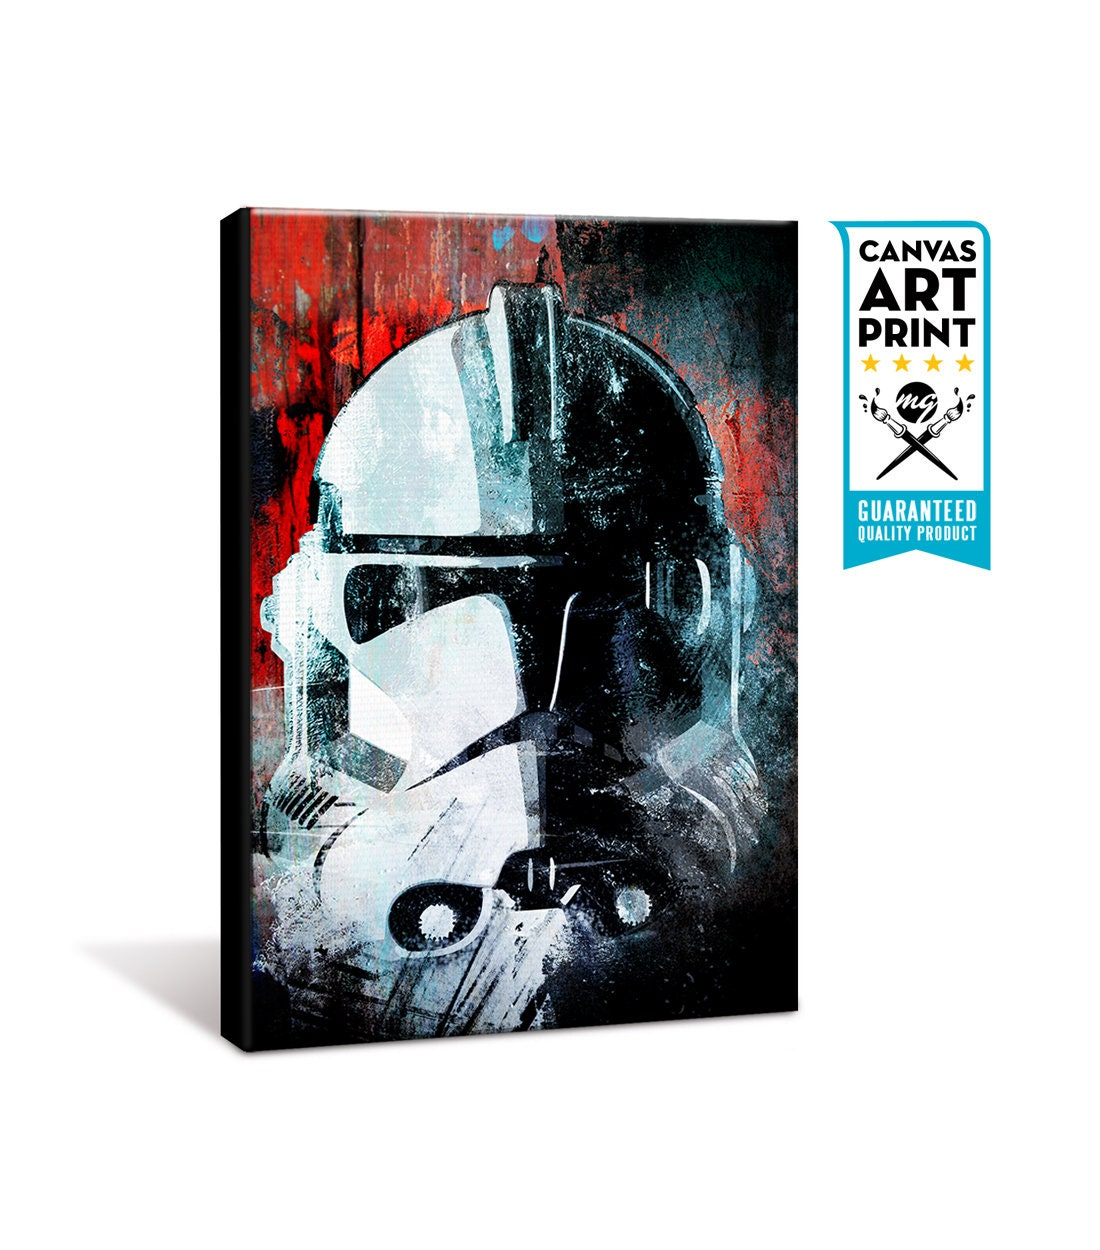 Clone trooper star wars canvas art star wars print star wars wall art star wars decor large canvas print canvas painting canvas gift